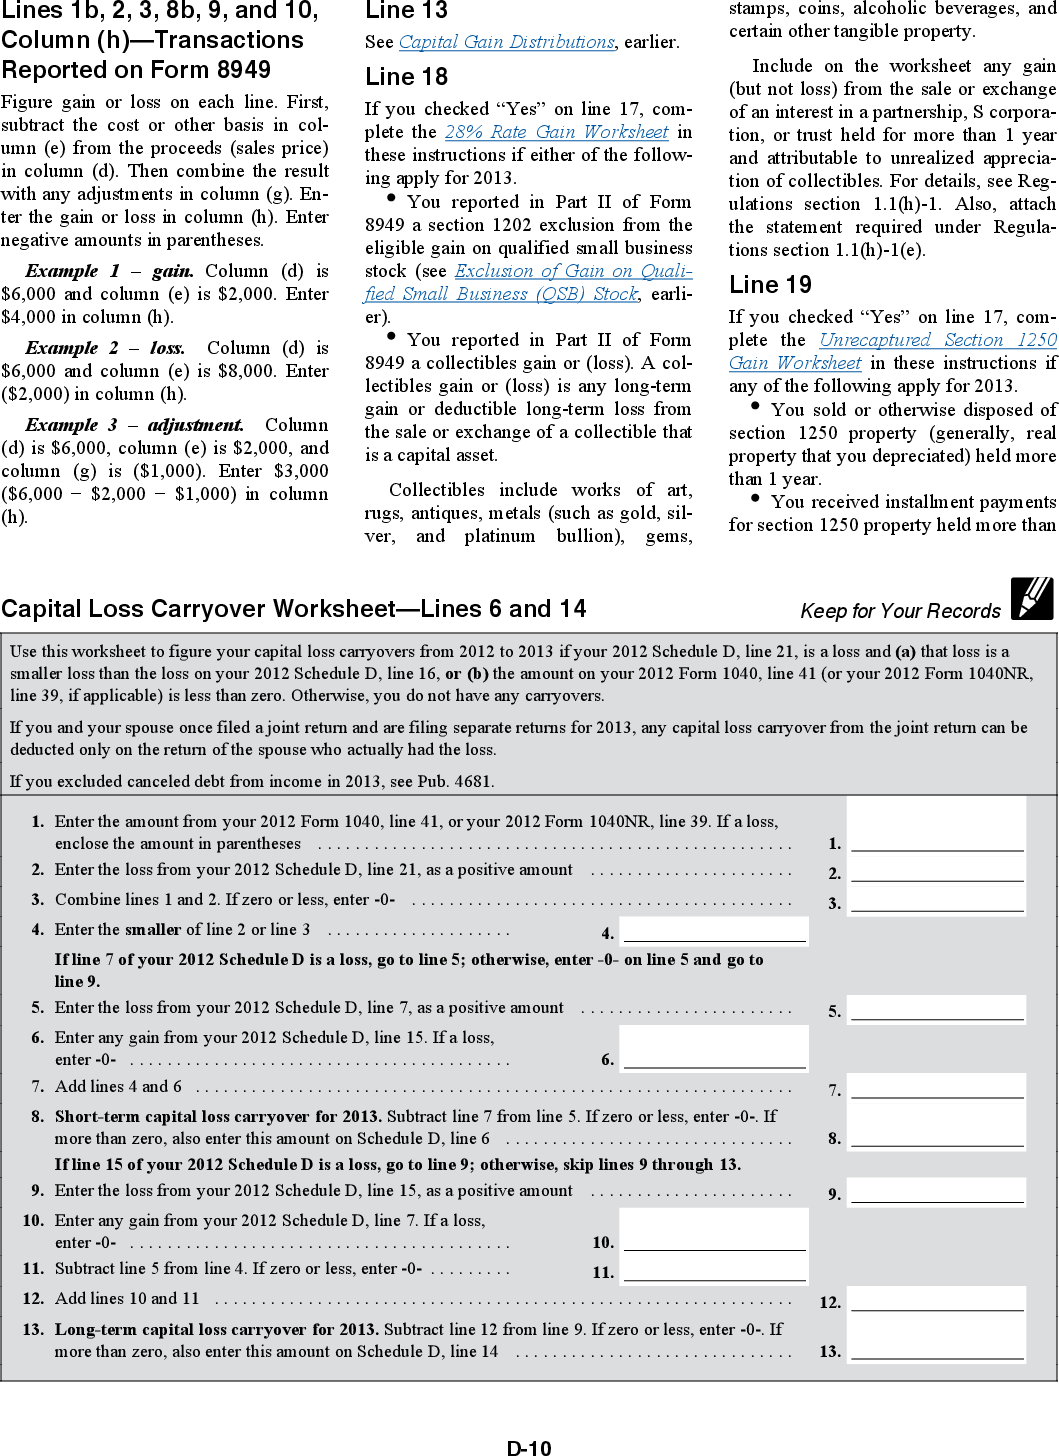 Free Worksheet Capital Loss Carryover Worksheet 2013 form 8949 online generation of irs schedule d and for just 10 00